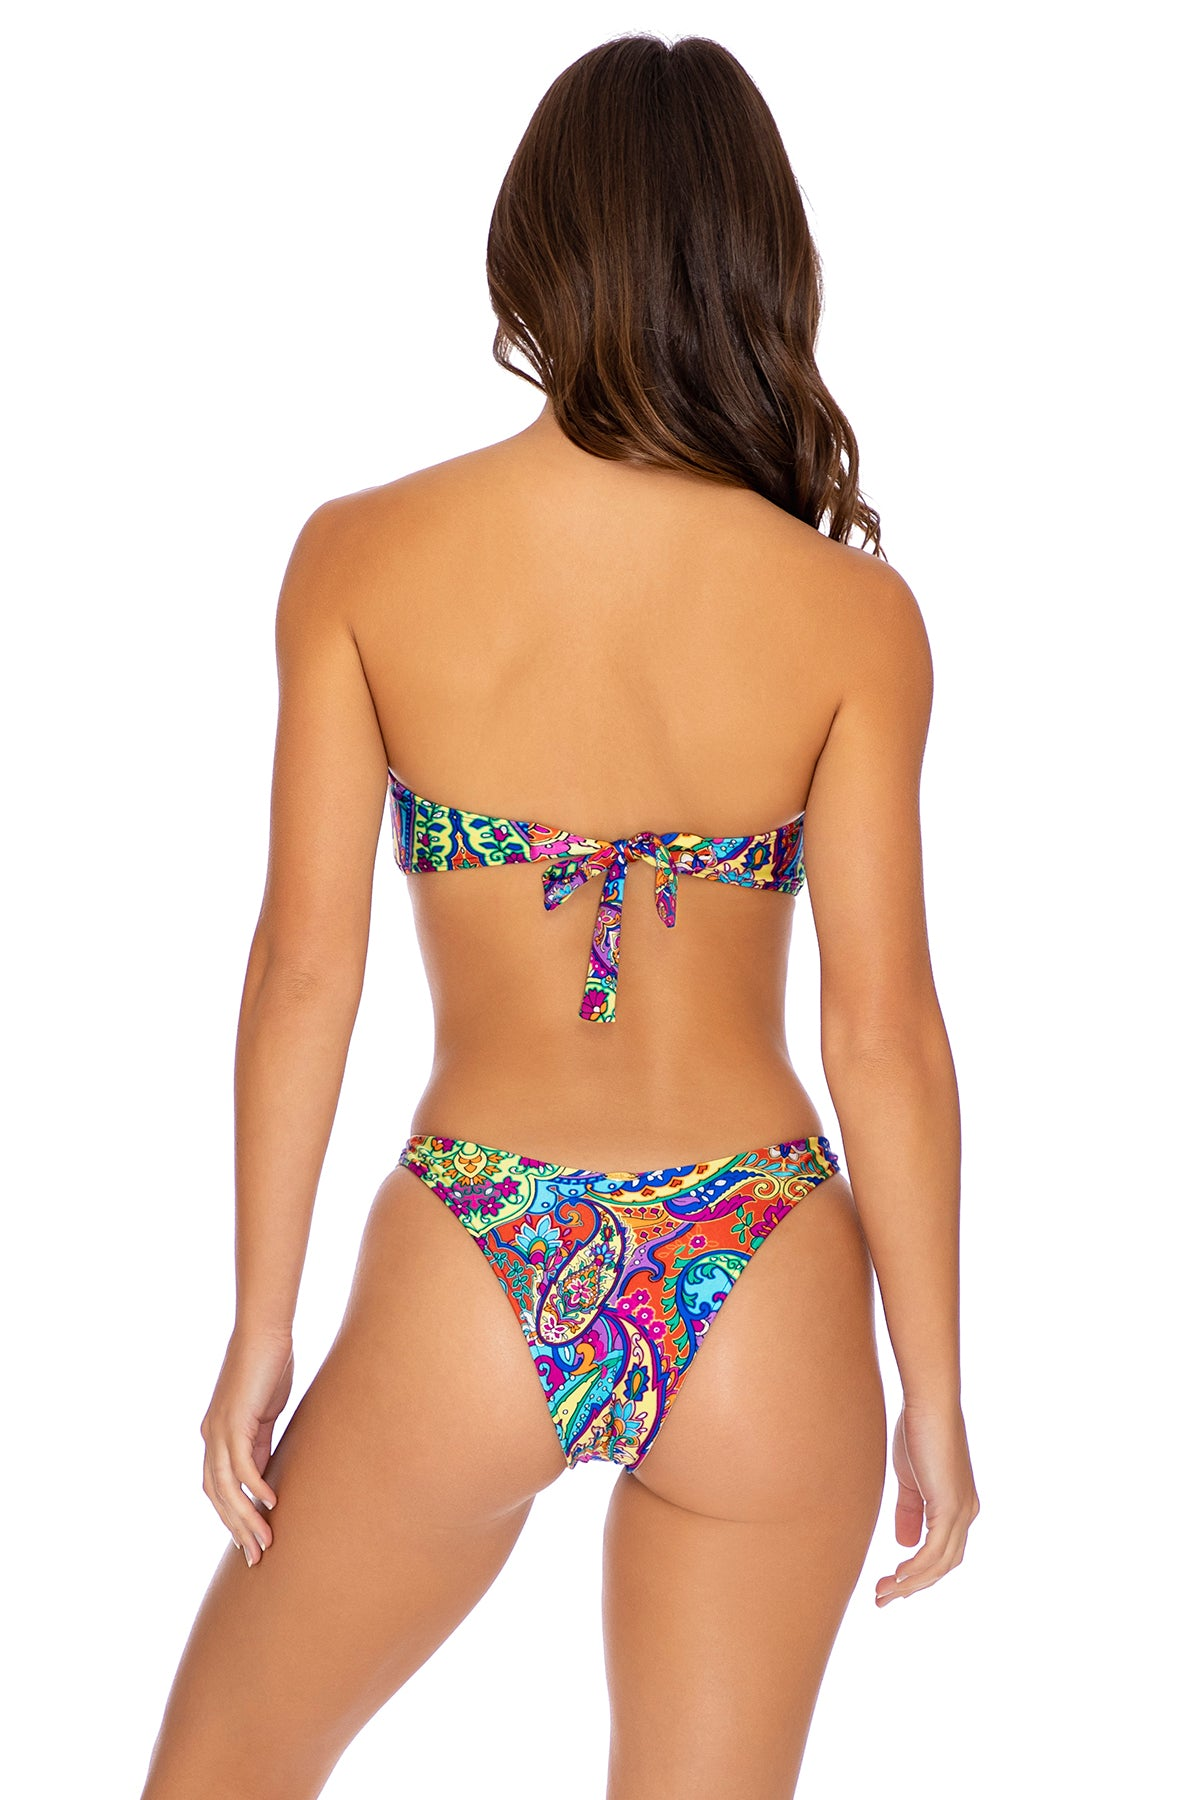 RETRO CRUSH - Gold V Ring Bandeau Top & High Leg Brazilian Bottom • Multicolor Campaign